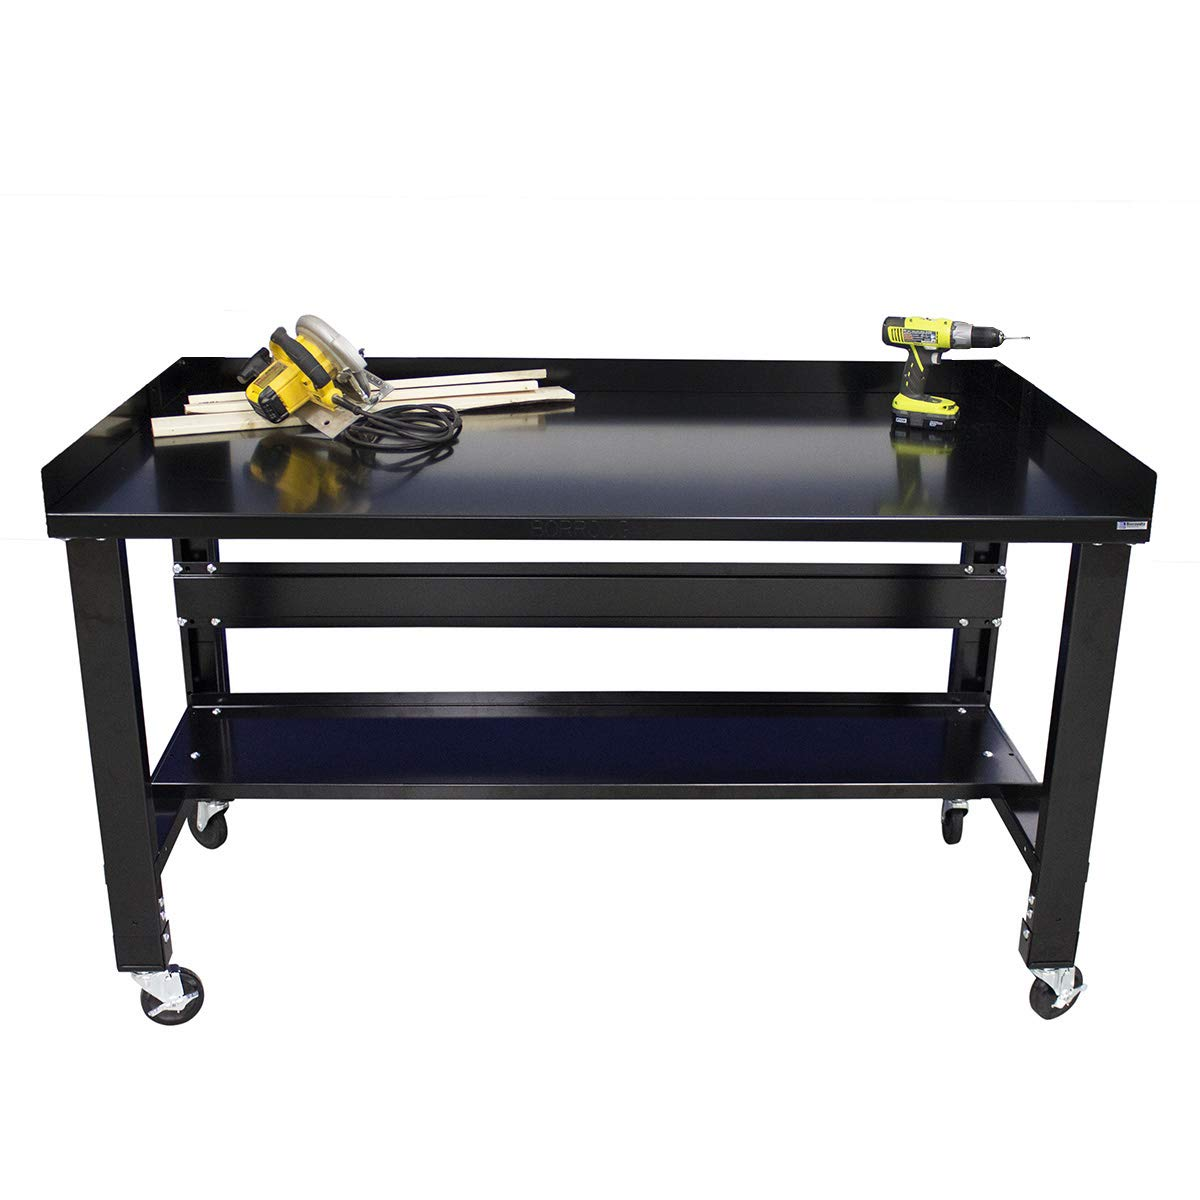 Borroughs Adjustable Height Black Painted Top Workbench with Casters, Back, and End Guards, 34 in x 60 in